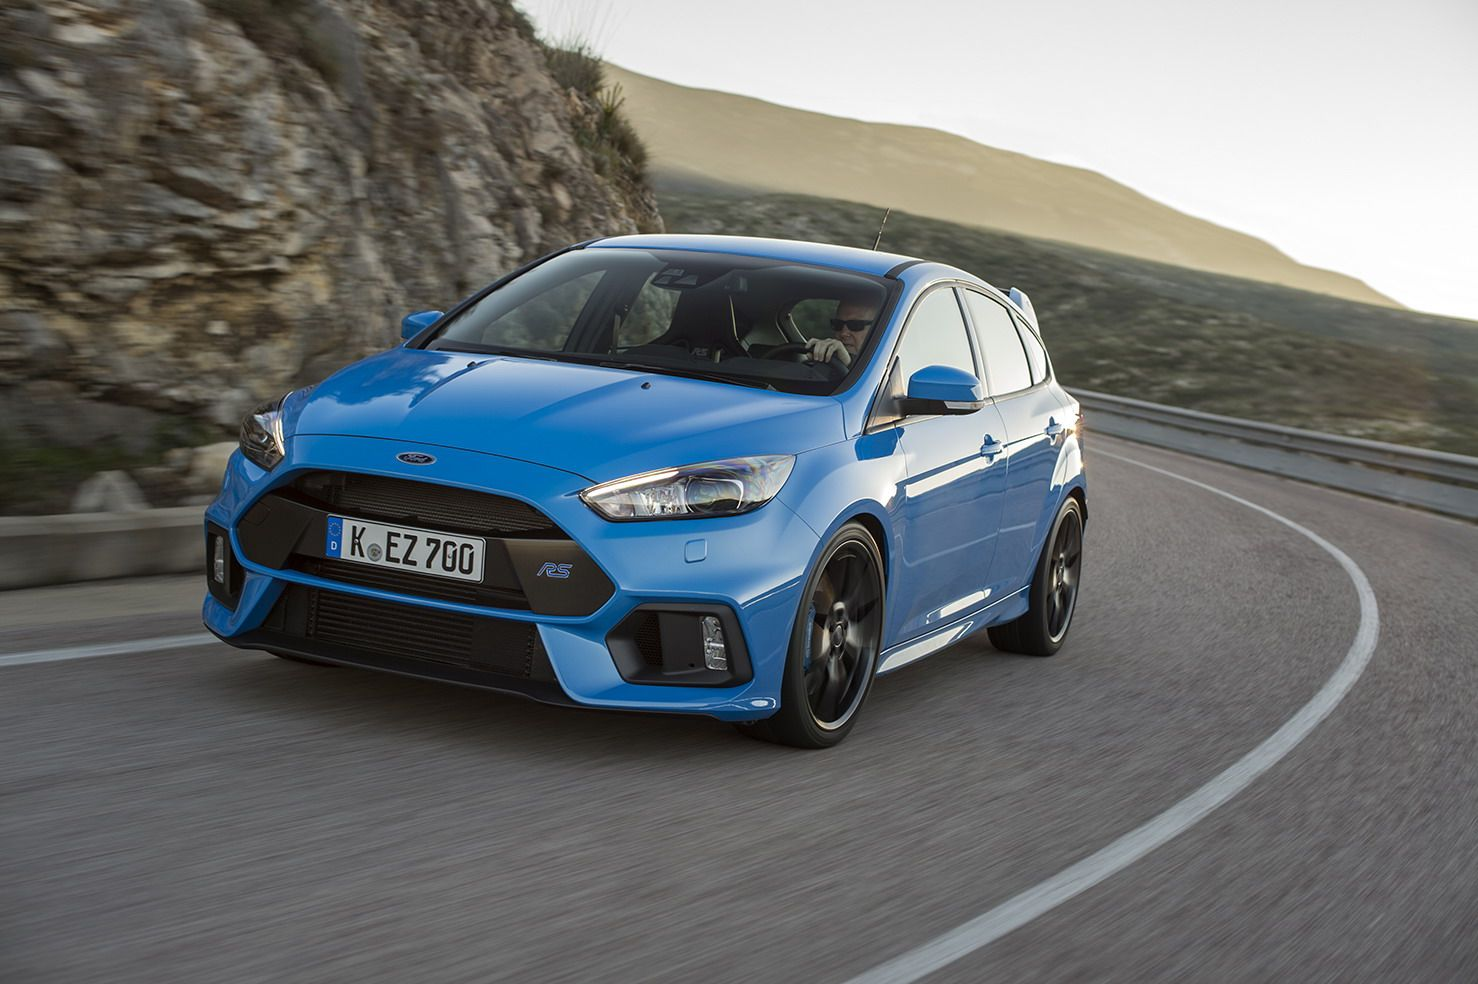 The Next Gen Focus Rs Could Stick It To Mercedes Amg And Audi With A 400 Horsepower Hybrid Drivetrain In 2020 Ford Focus Ford Focus Rs Ford Rs